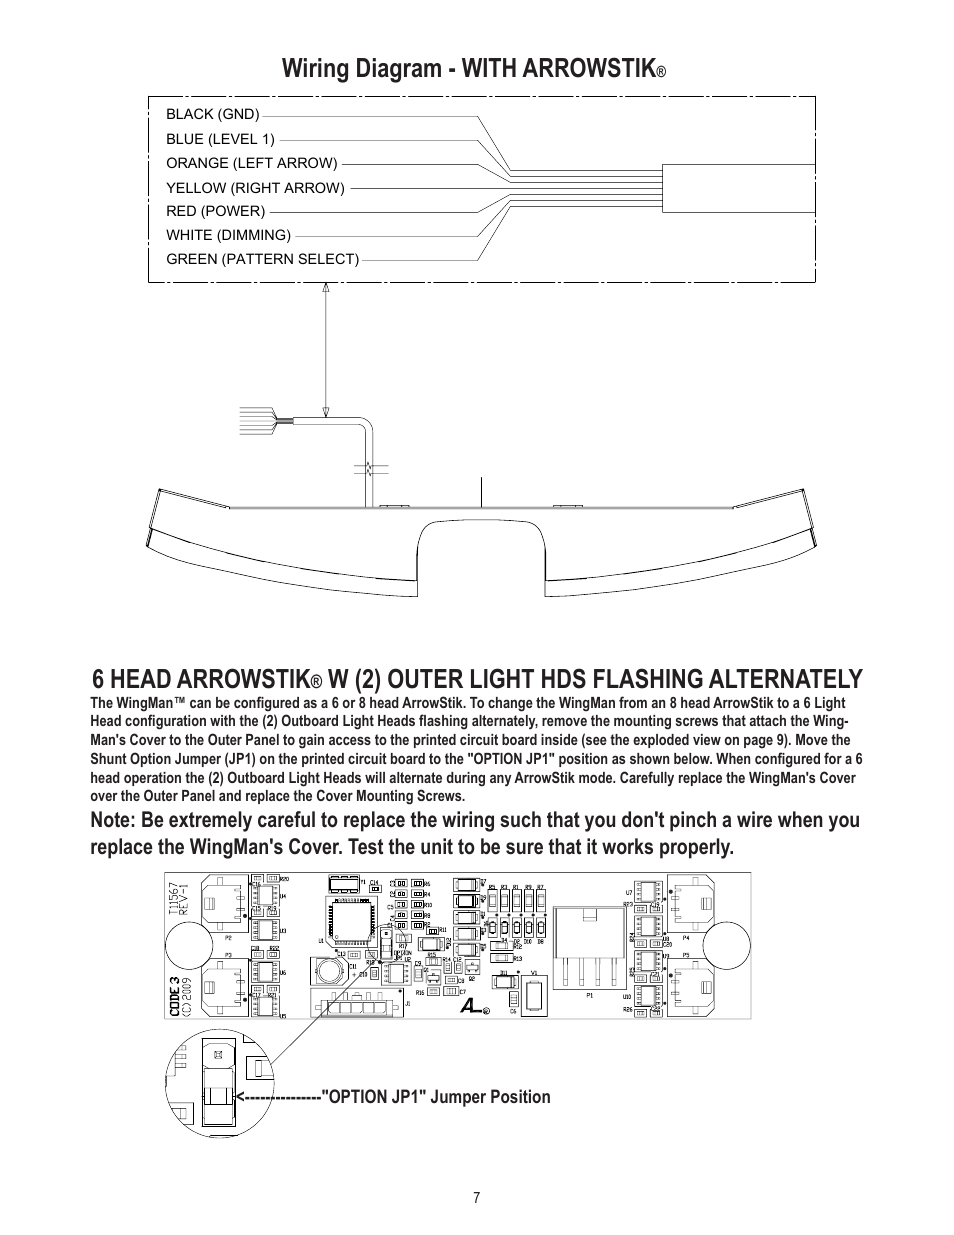 Code 3 Wingman Wiring Diagram Completed Diagrams Crown Vic With Arrowstik 6 Head W 2 Outer Light Wire